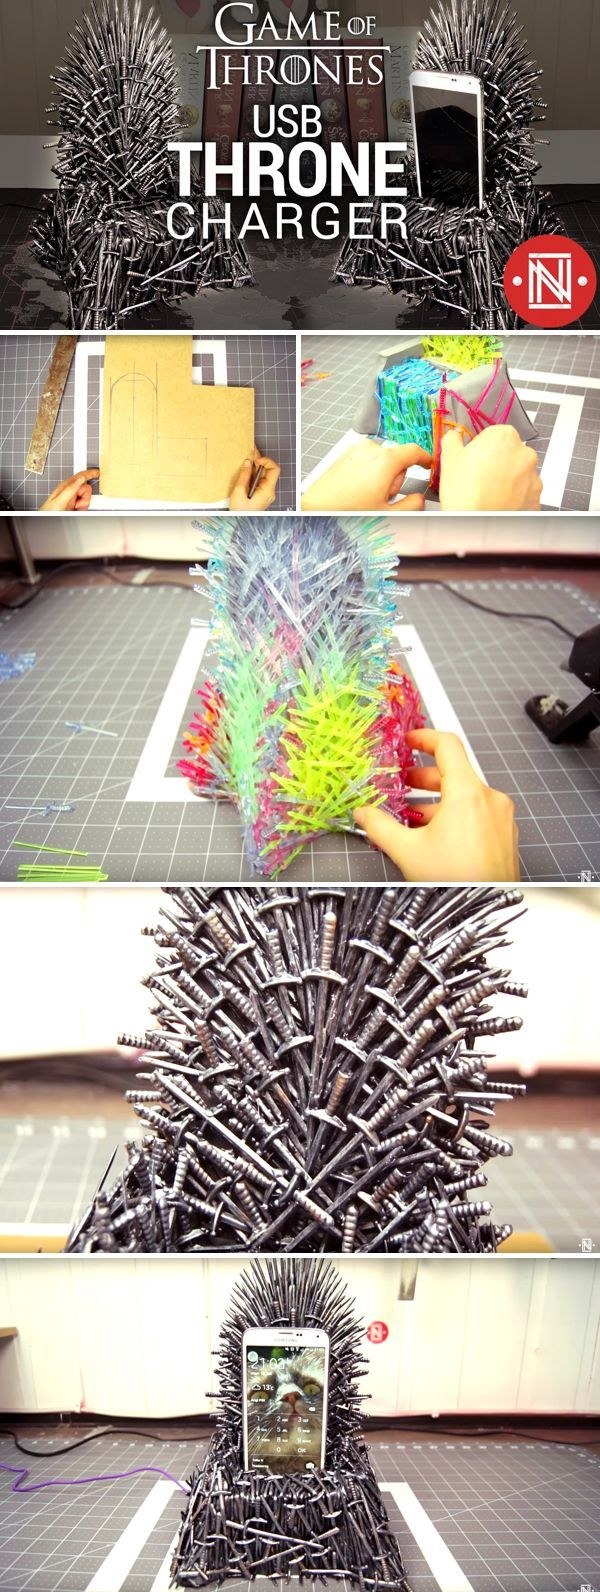 A Youtuber Just Designed An Iron Throne Phone Charger Made With